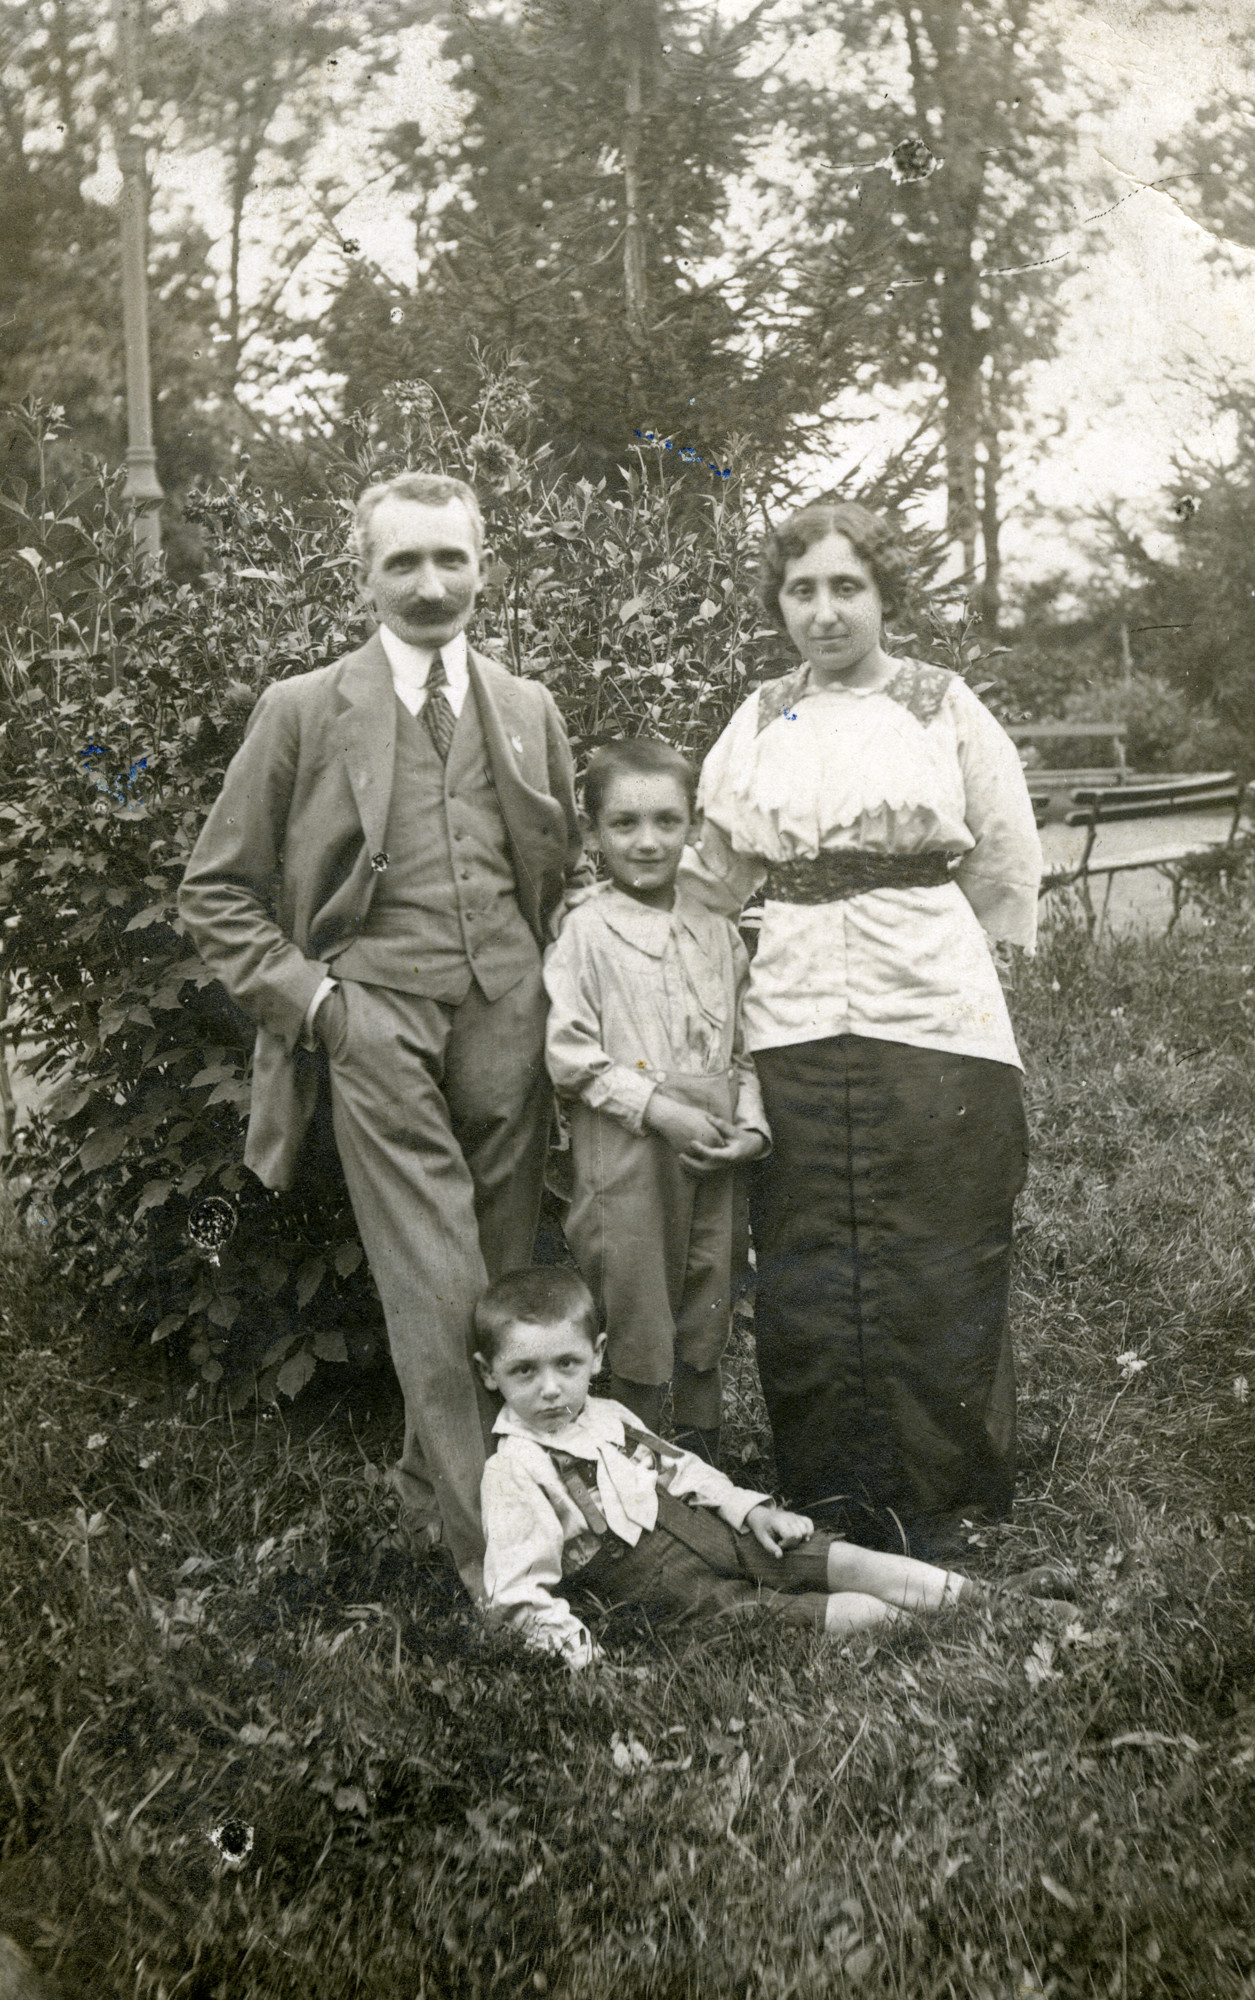 Outdoor portrait of a Romanian Jewish family.  Pictured are  Milo and Helene Gelehrter with their sons, Felix (lower) and Moni.